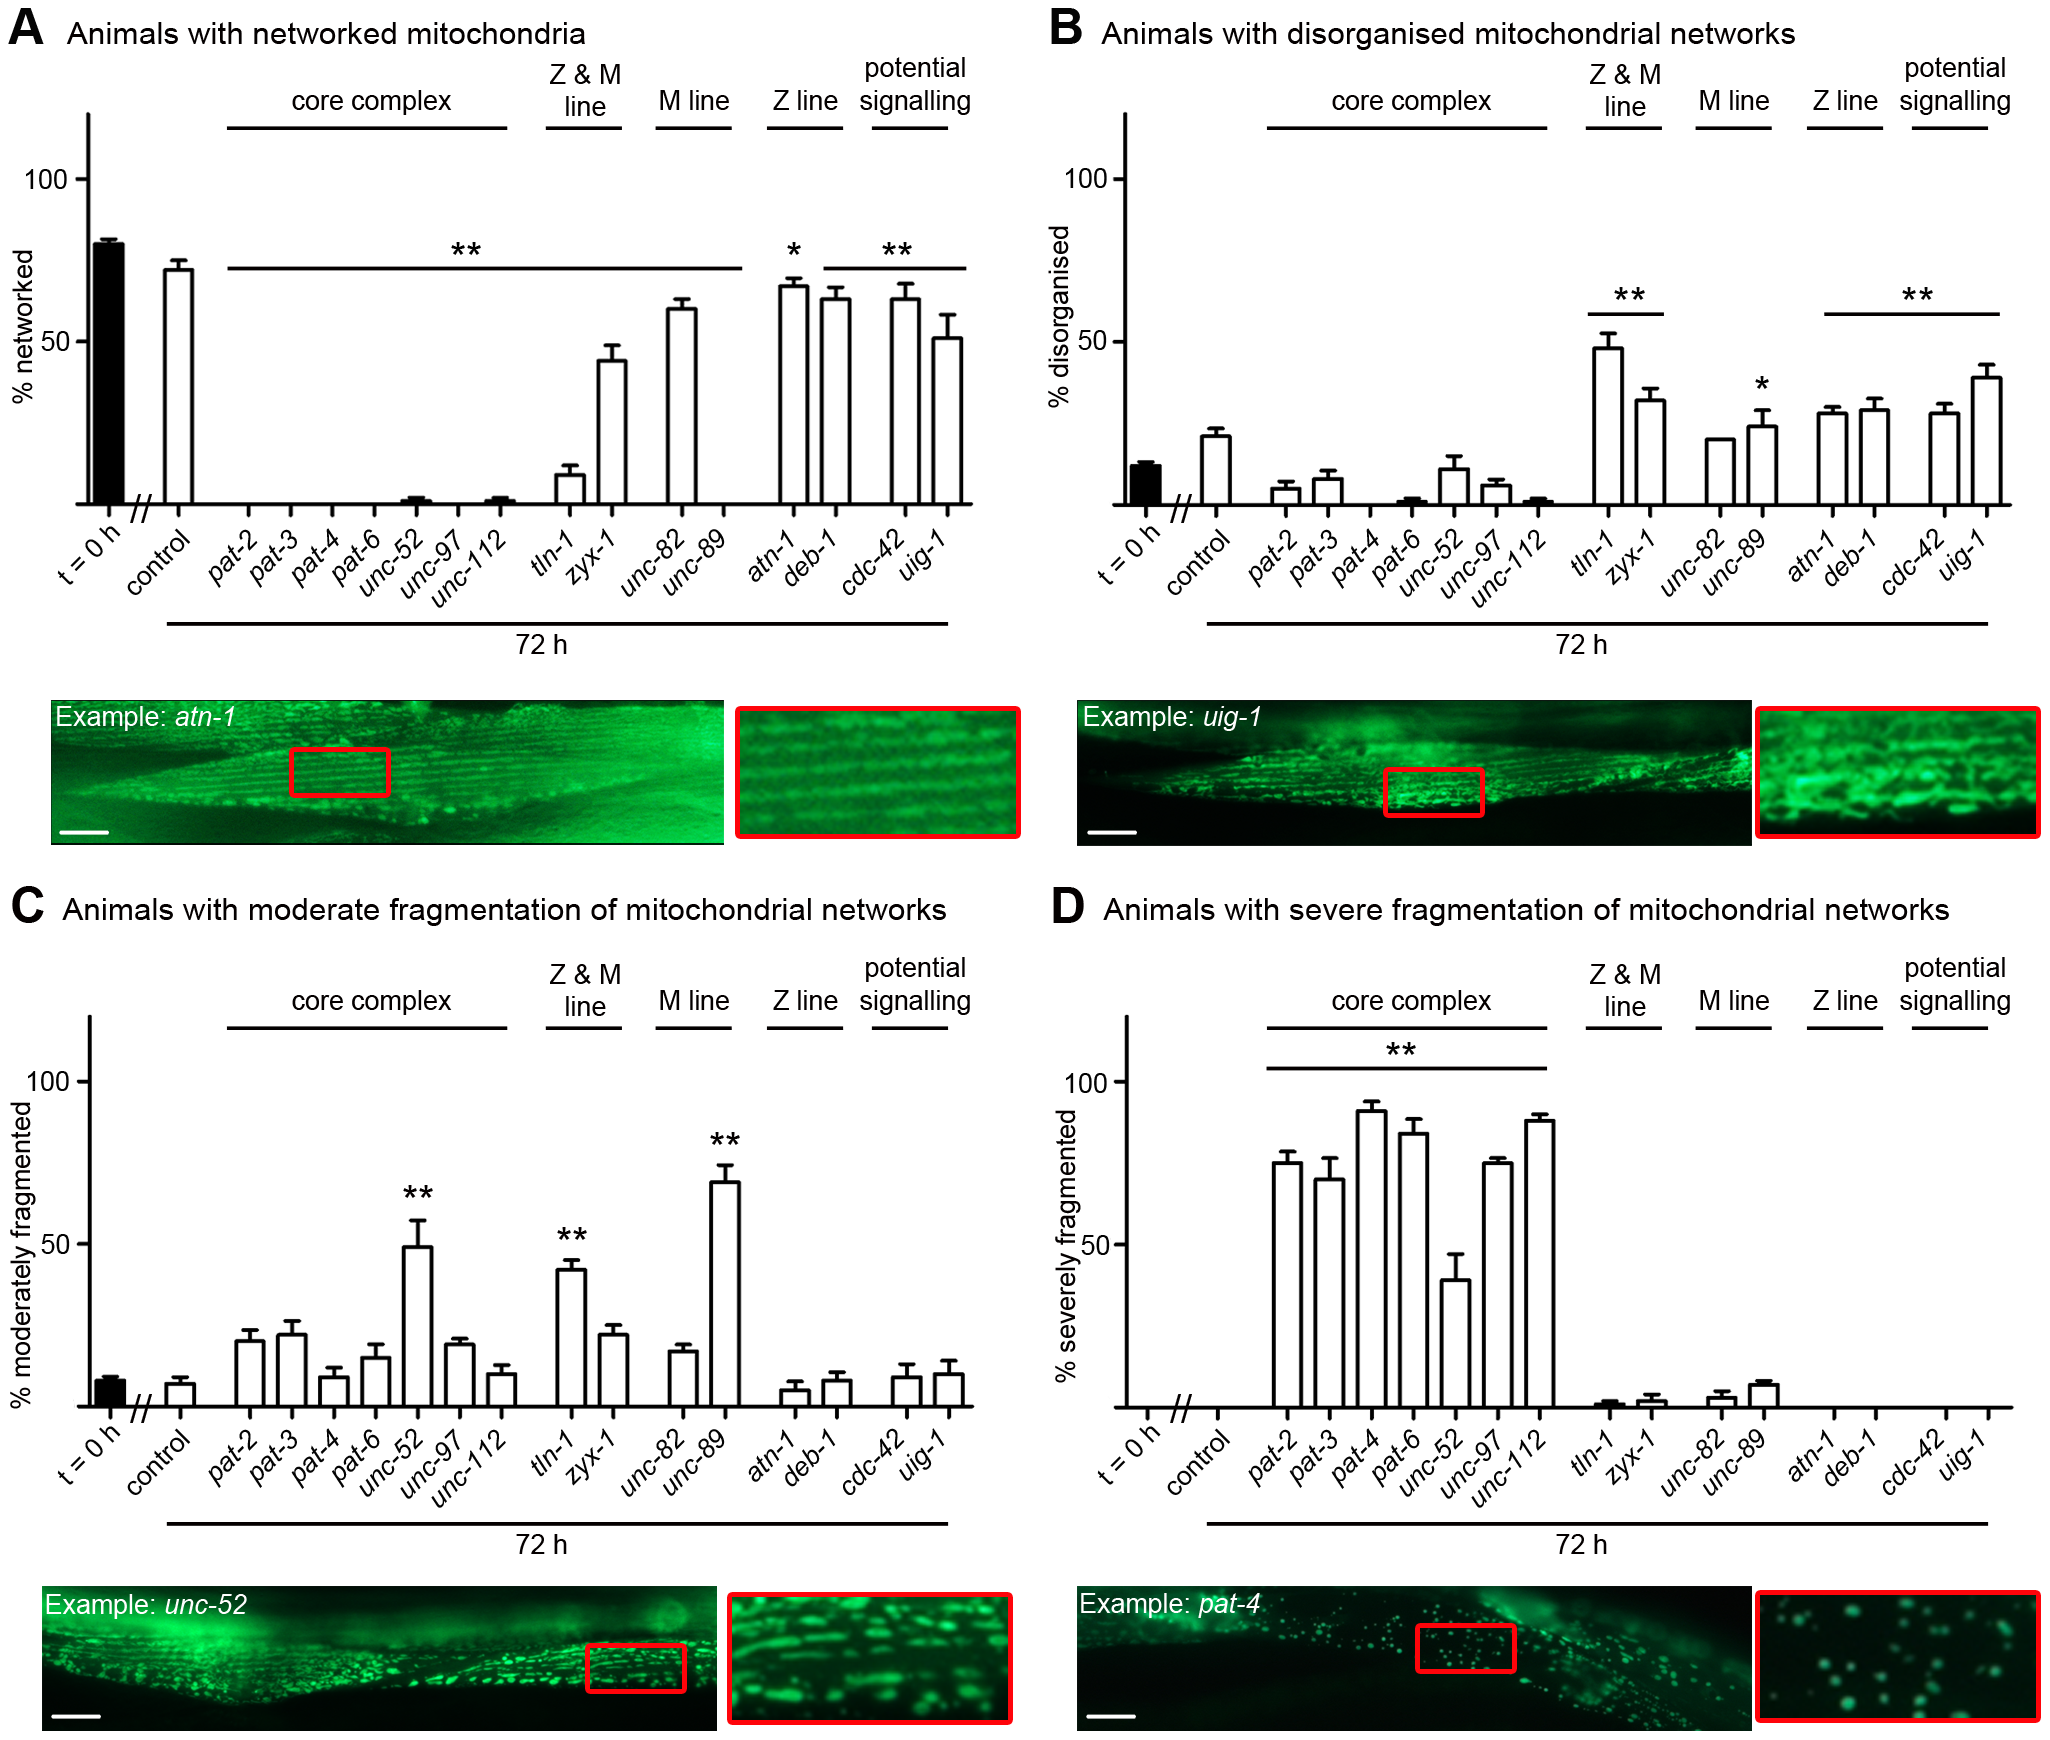 Loss of muscle attachment results in mitochondrial fragmentation.